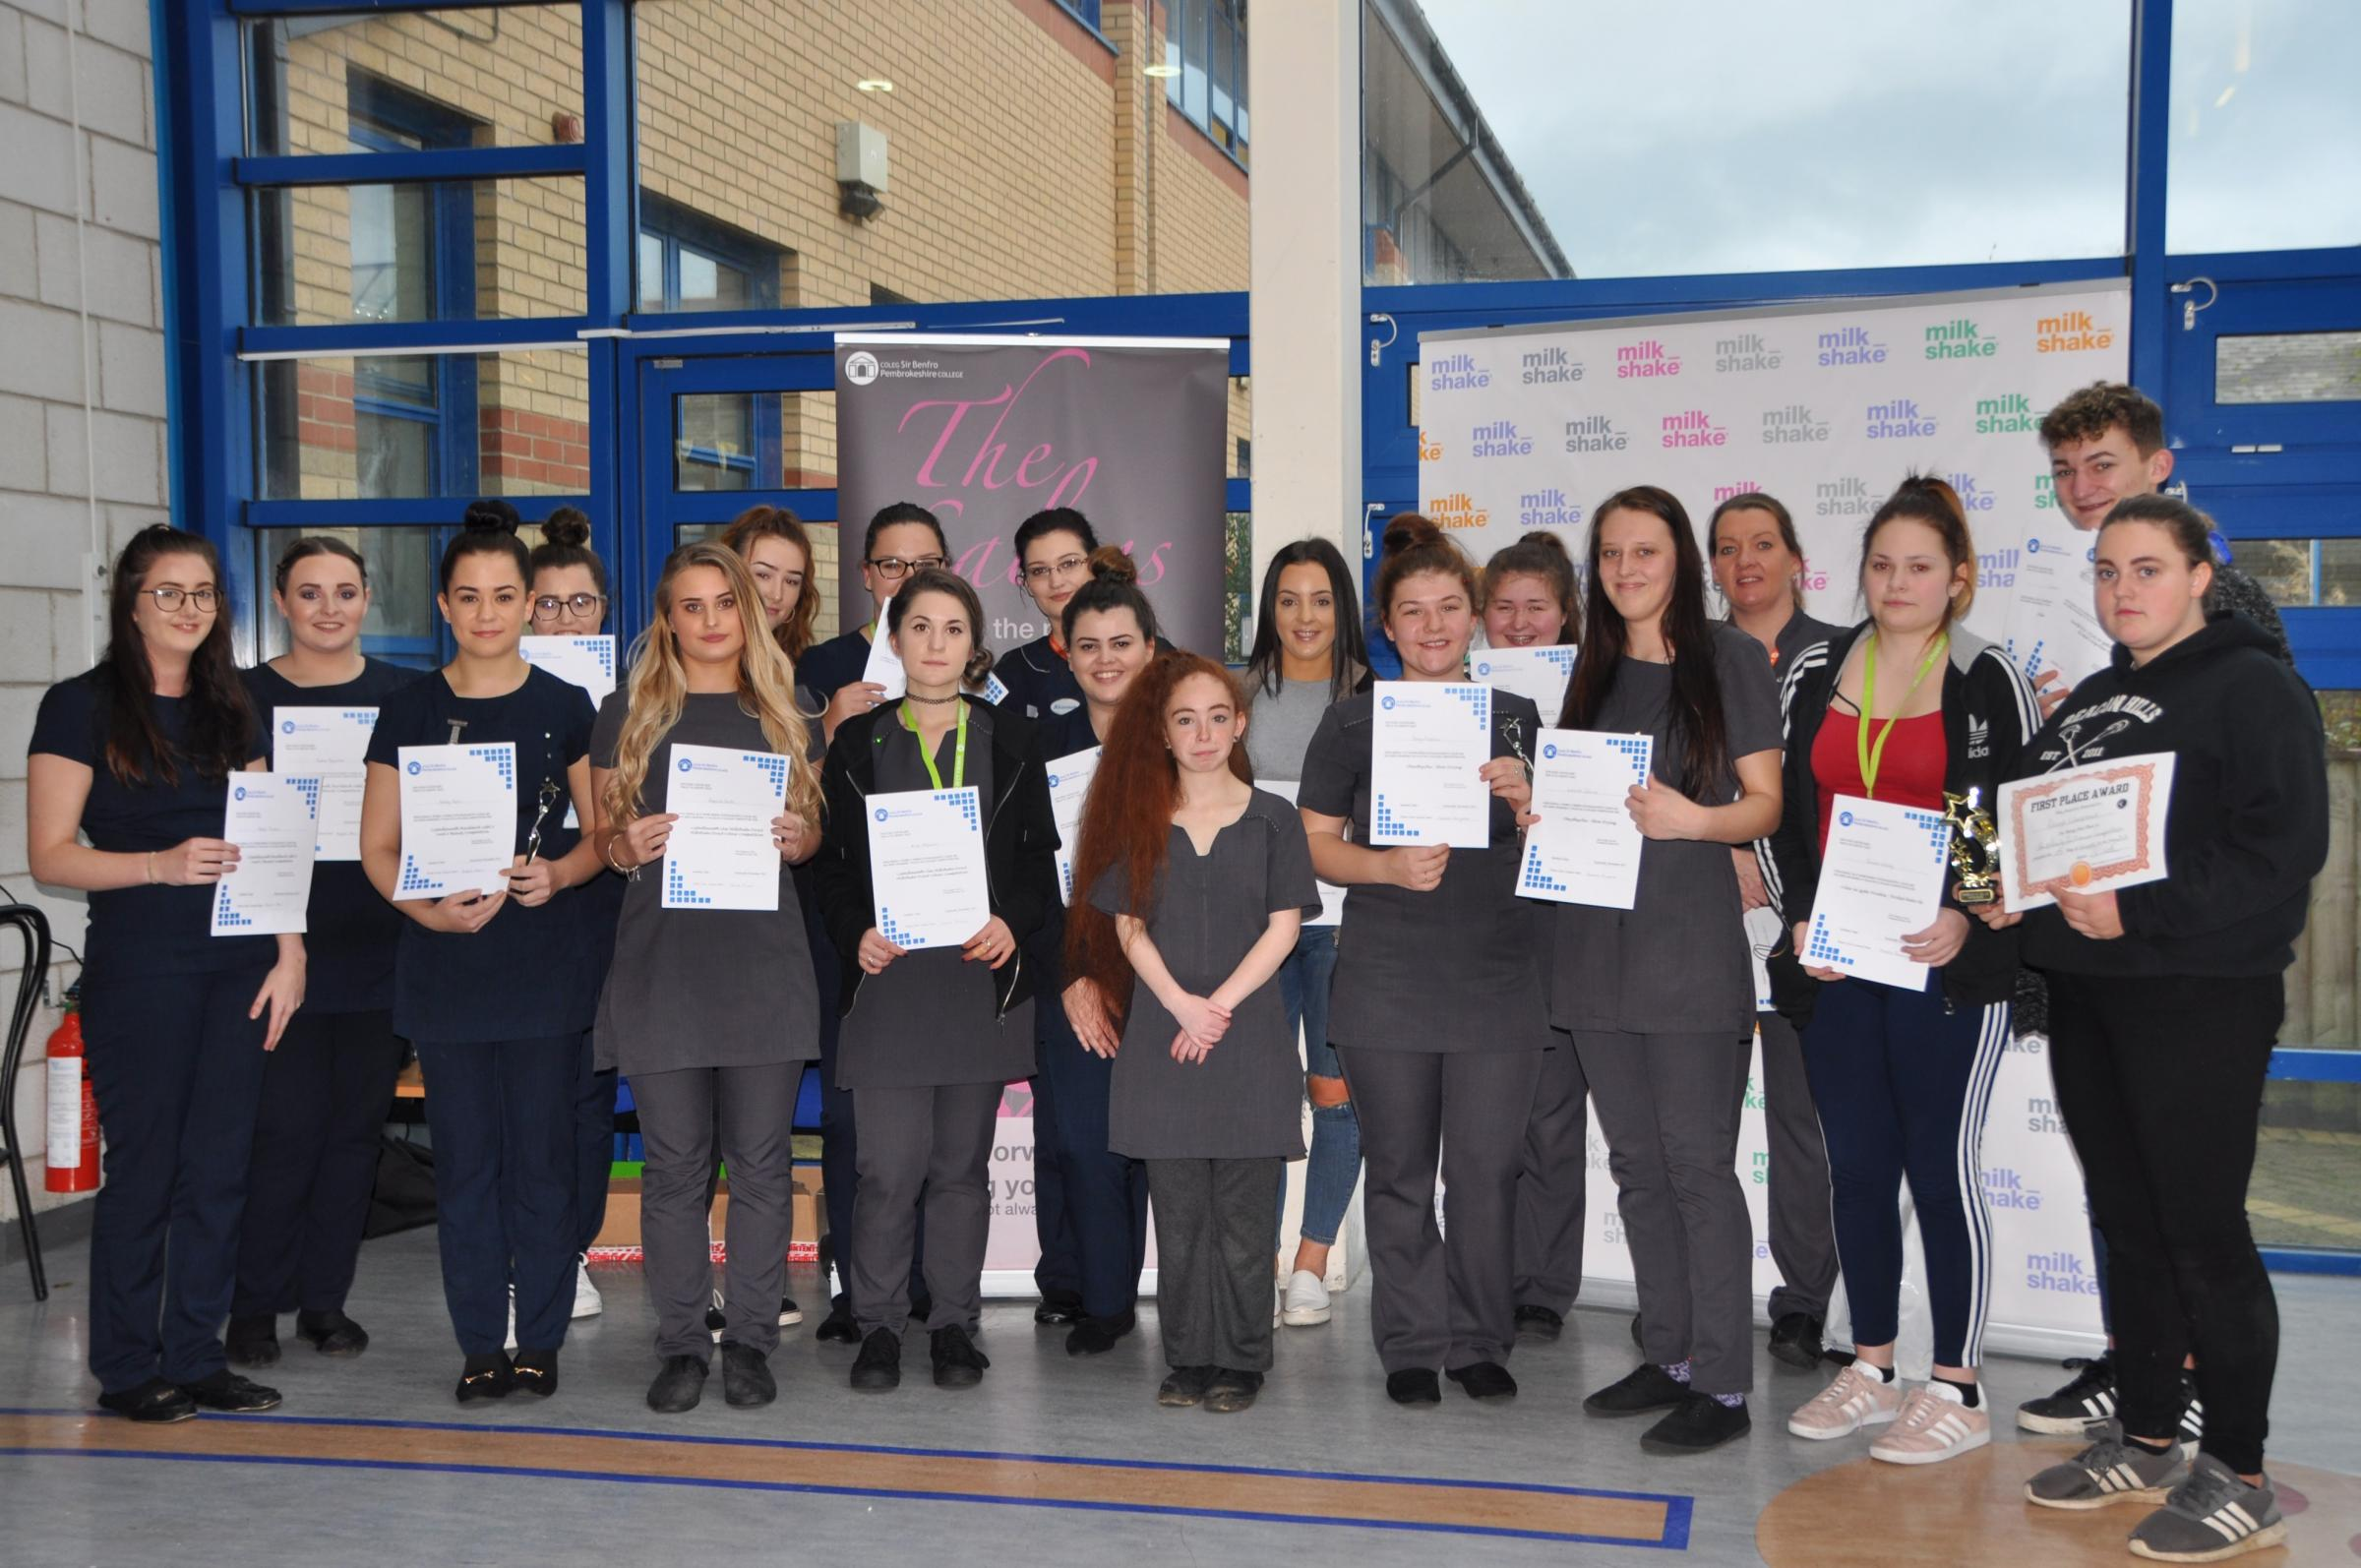 Pembrokeshire College's Hair and Beauty students have been showing off their skills in an internal competition. PCITURE: Pembrokeshire College.